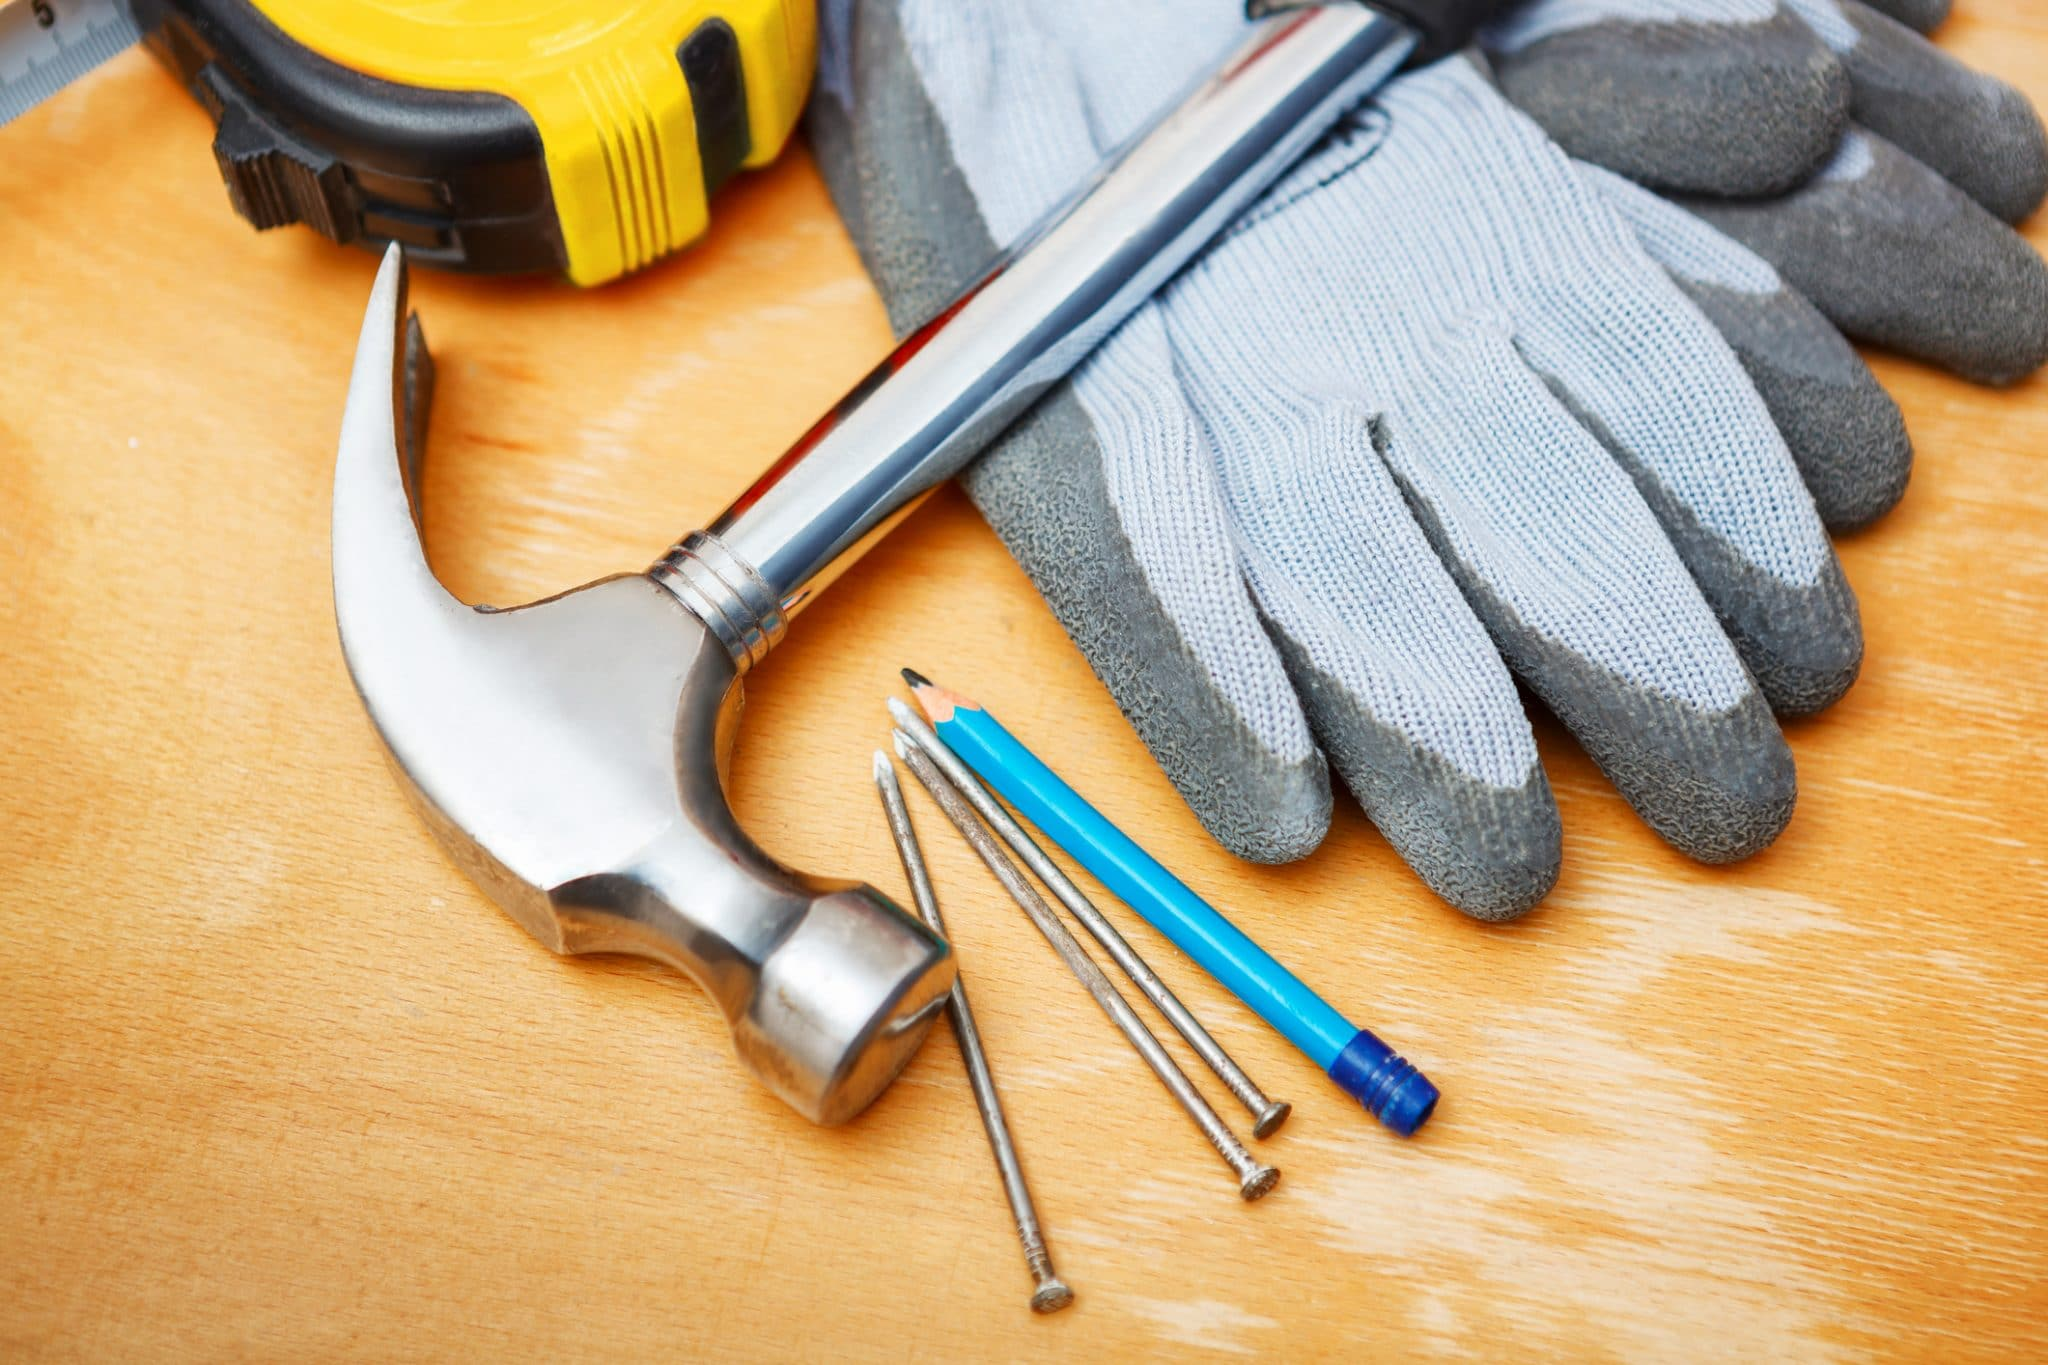 3 Things You Should Ask Yourself Before a DIY Project